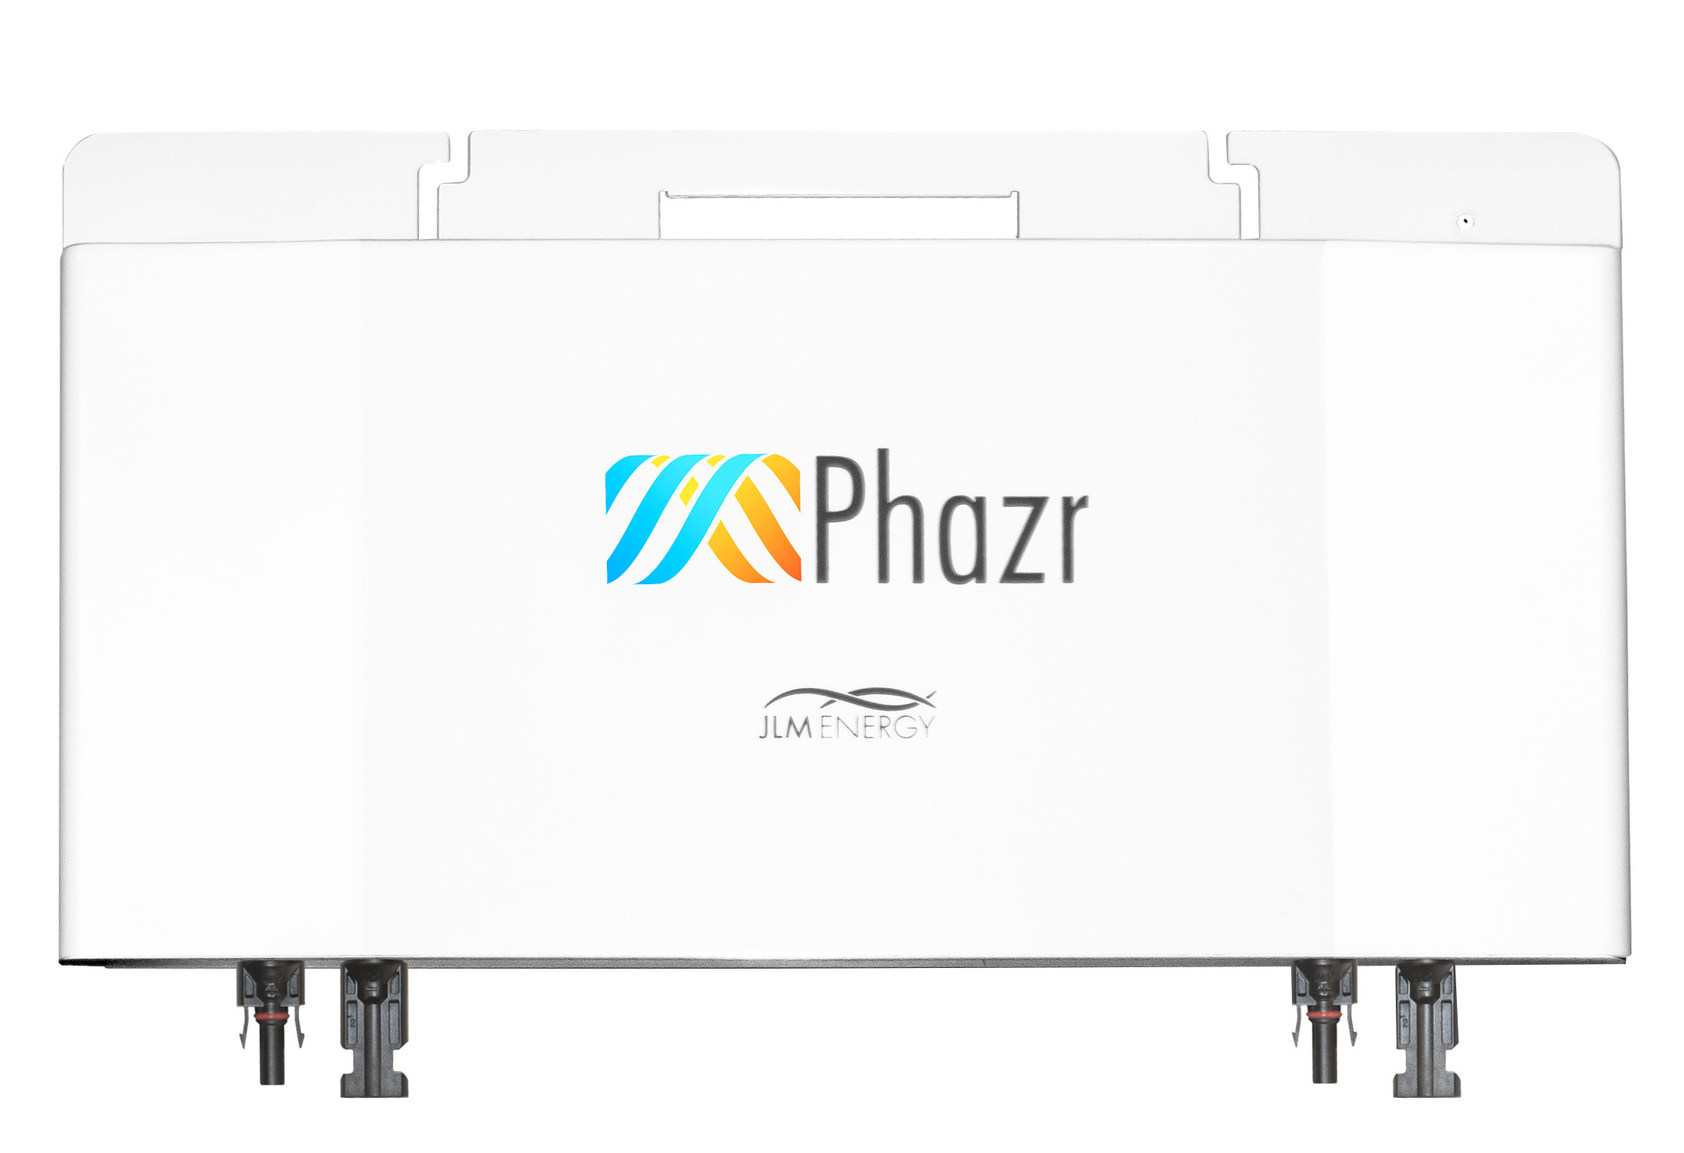 jlm energy sells commercial phazr storage system to hoopa valley tribe